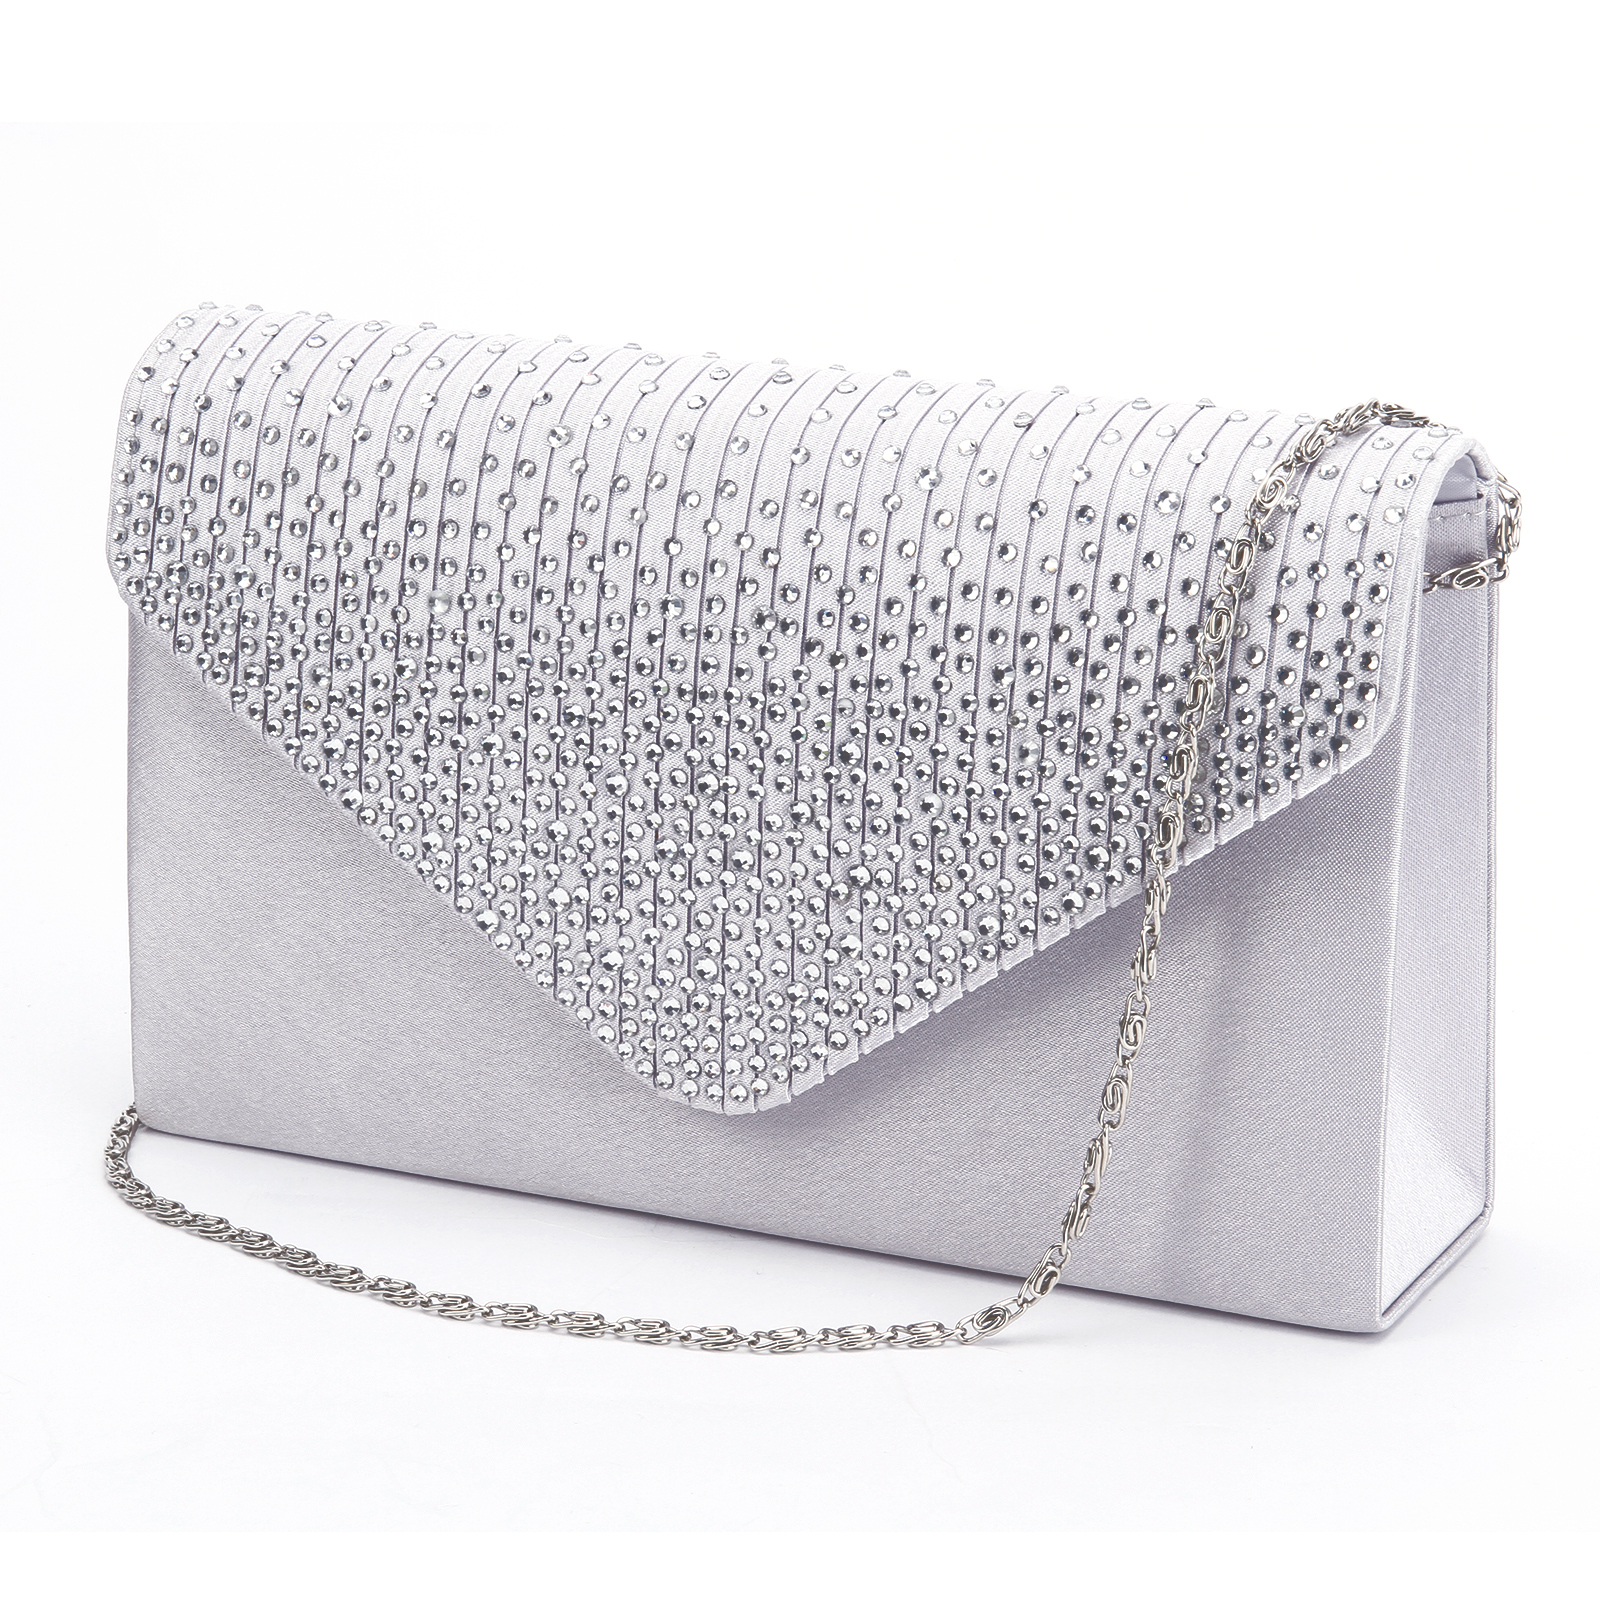 Shop Target for Clutches you will love at great low prices. Spend $35+ or use your REDcard & get free 2-day shipping on most items or same-day pick-up in store.